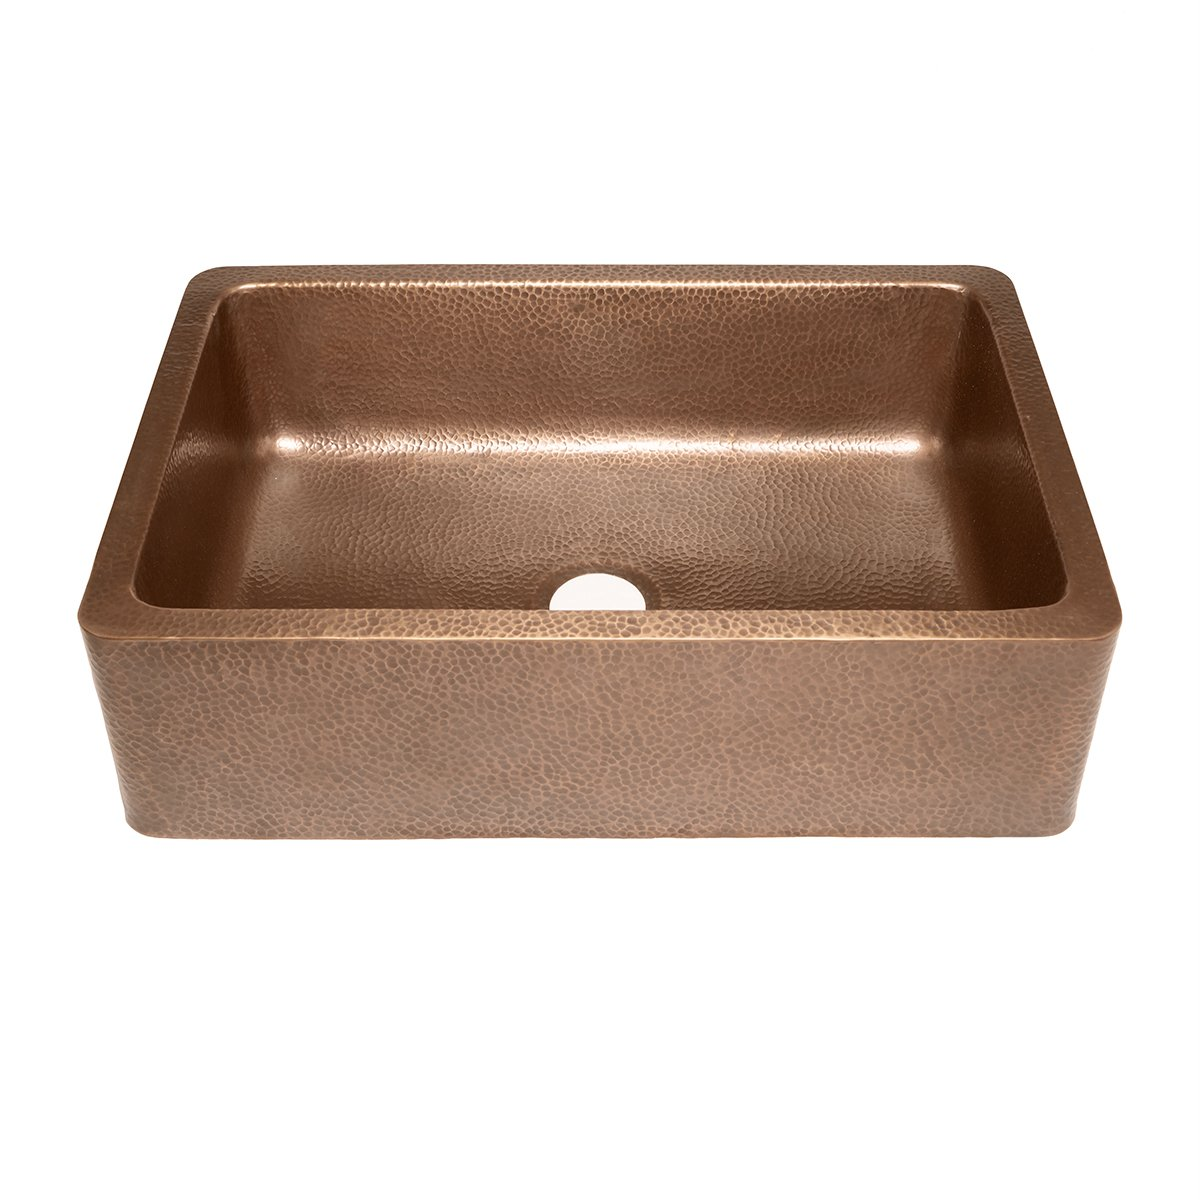 Sinkology Adams Handmade Single Bowl Kitchen Sink